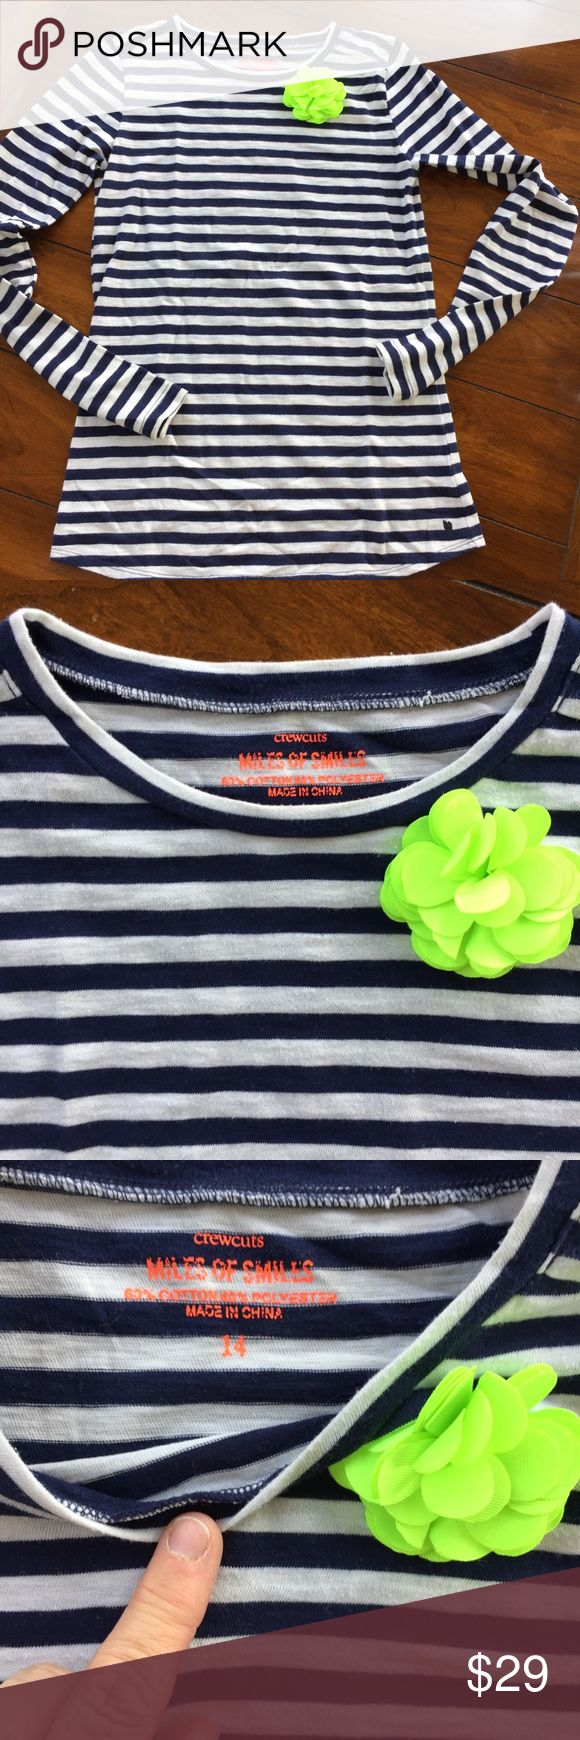 J CREW girl's top like new. Size 14 Such a cute j crew top for girl's. Navy and white stripe with flower detail at neckline. Like new. Size 14 J. Crew Shirts & Tops